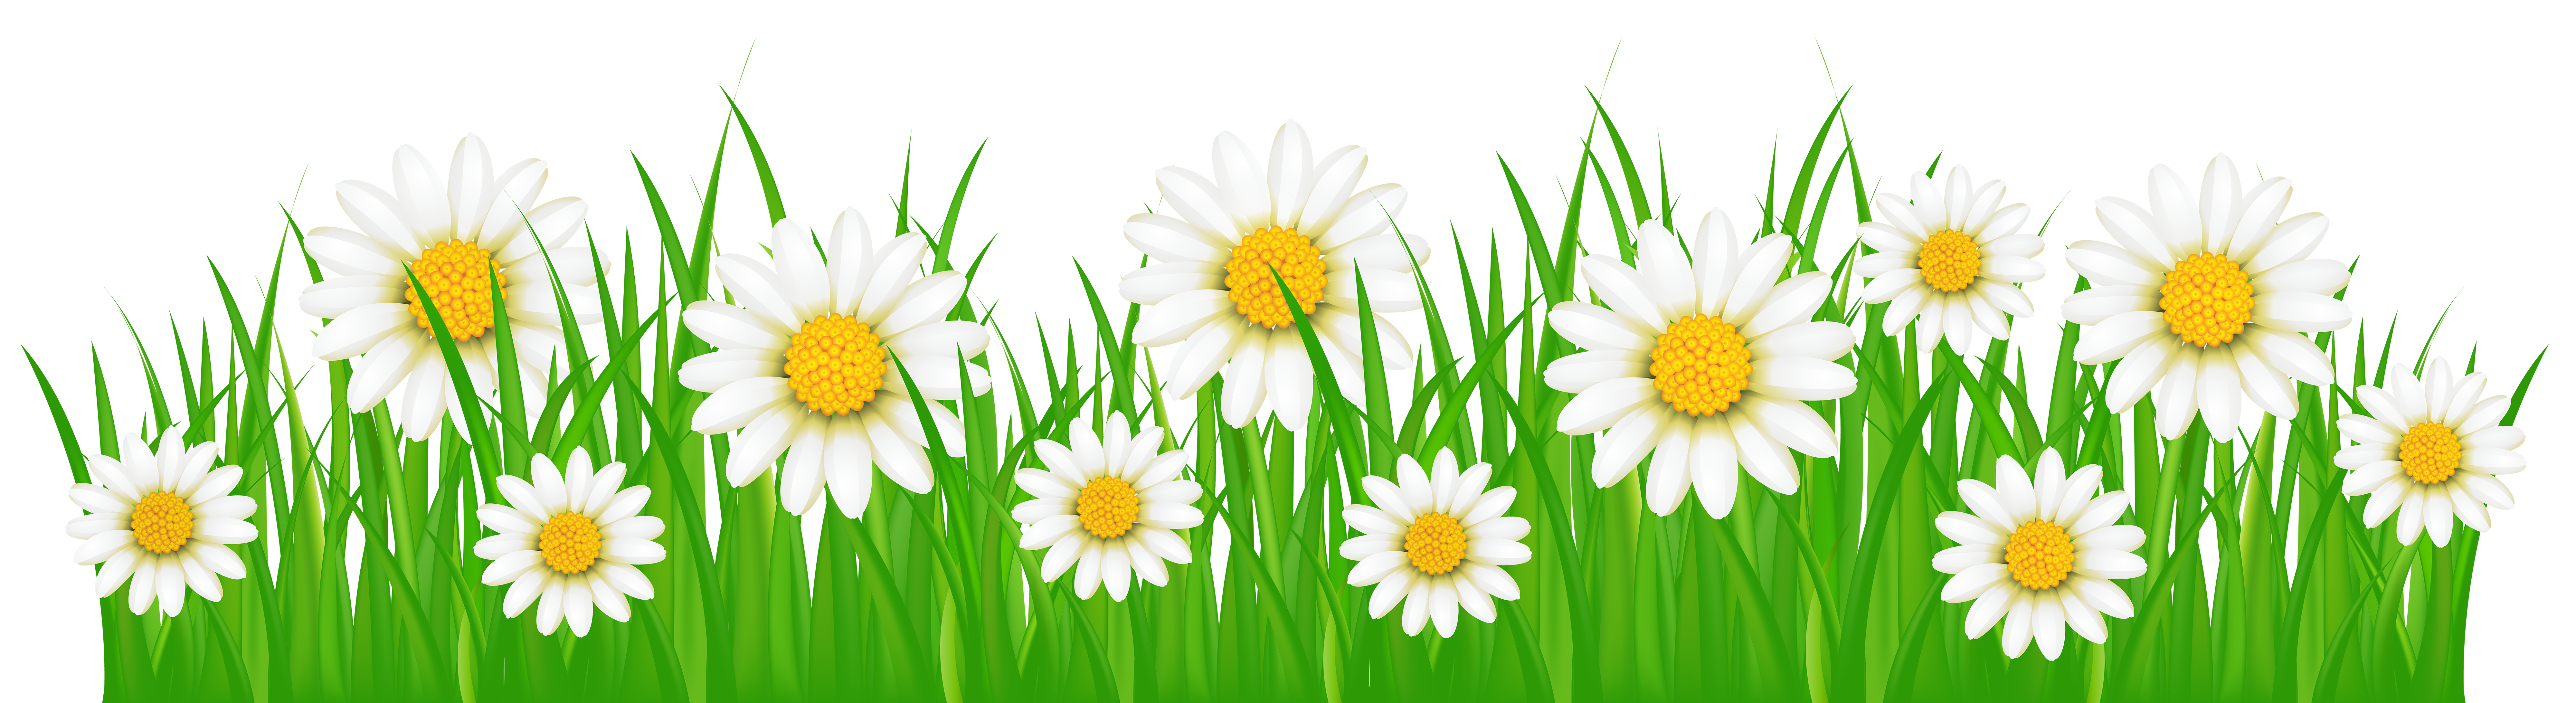 Flower and grass clipart clip art freeuse download Grass Ground with White Flowers PNG Clip Art Image clip art freeuse download